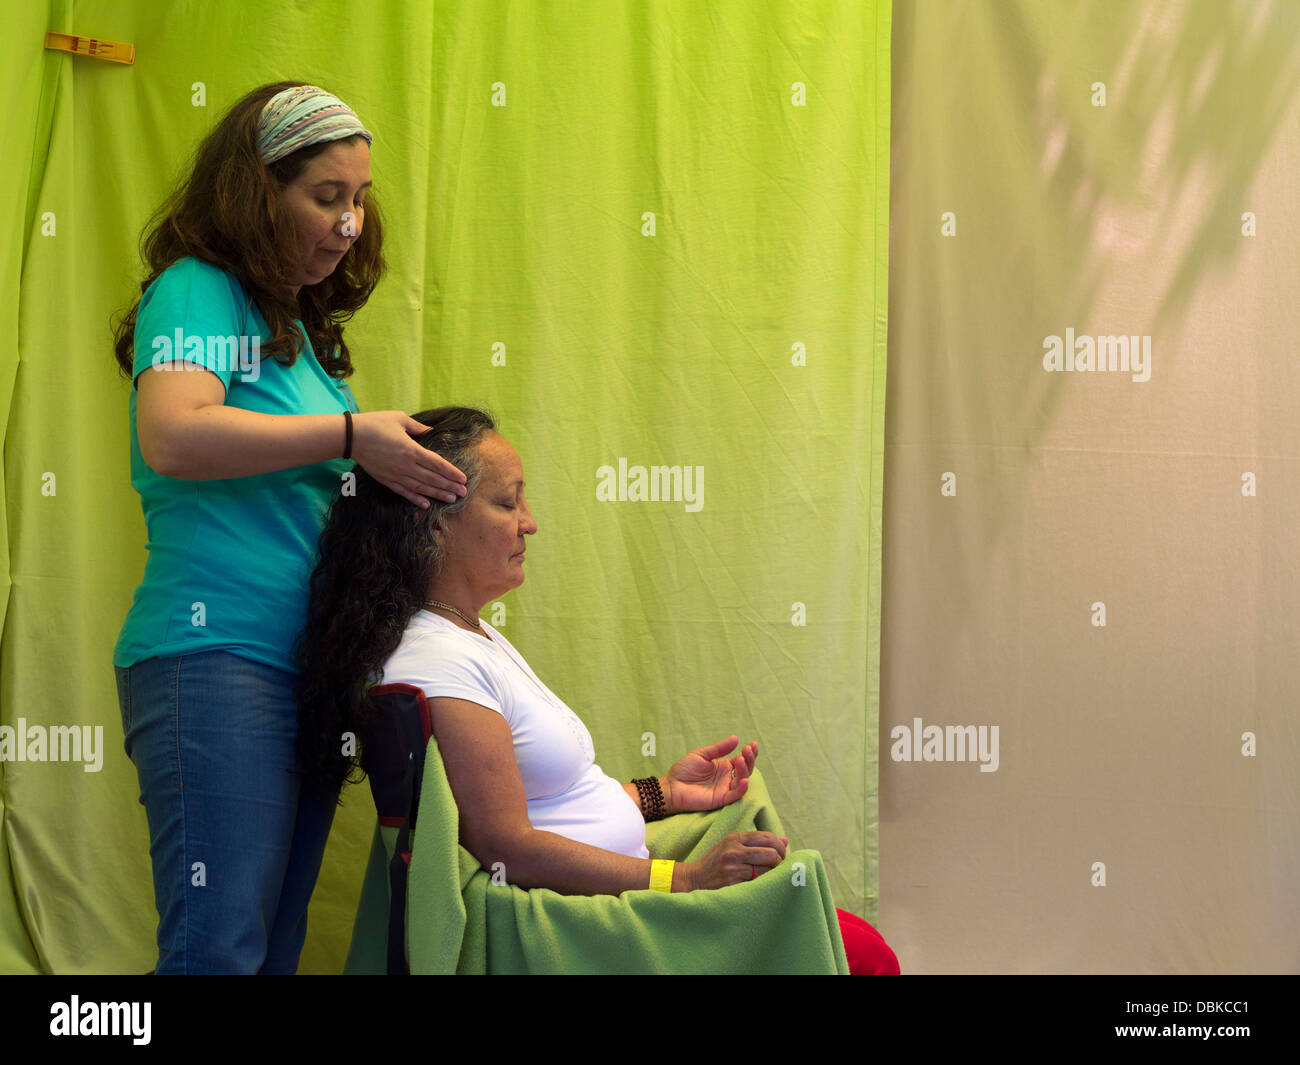 Middle-aged woman getting an indian head massage - Stock Image